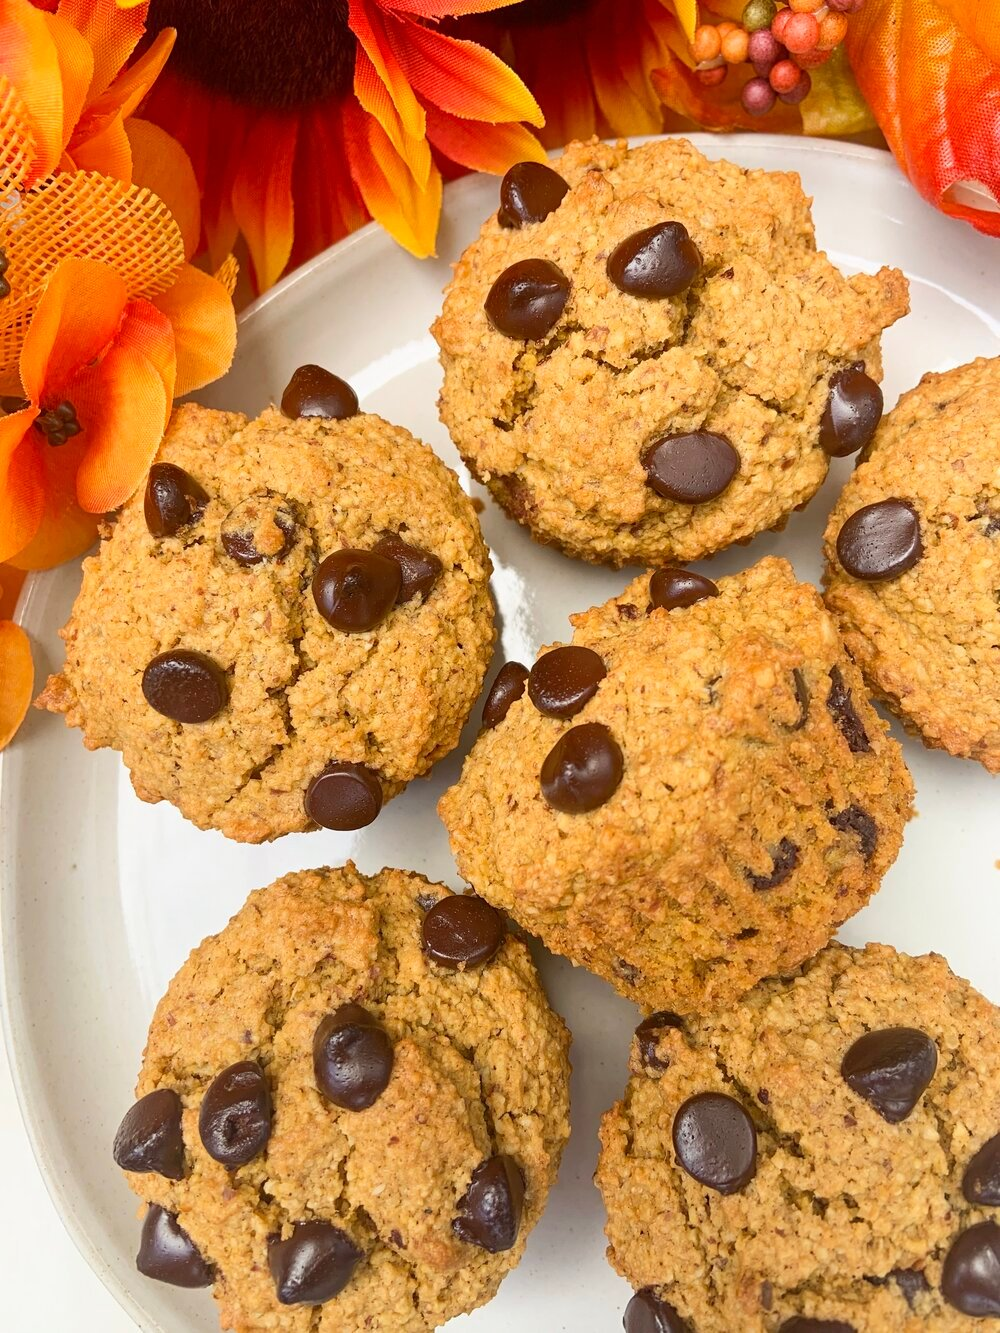 Pumpkin Chocolate Chip Muffins - These muffins are made with a combination of oat flour and almond flour to create the perfect moist texture. They are not too sweet and make the perfect accompaniment with an almond cappuccino sprinkled with pumpkin pie spice!